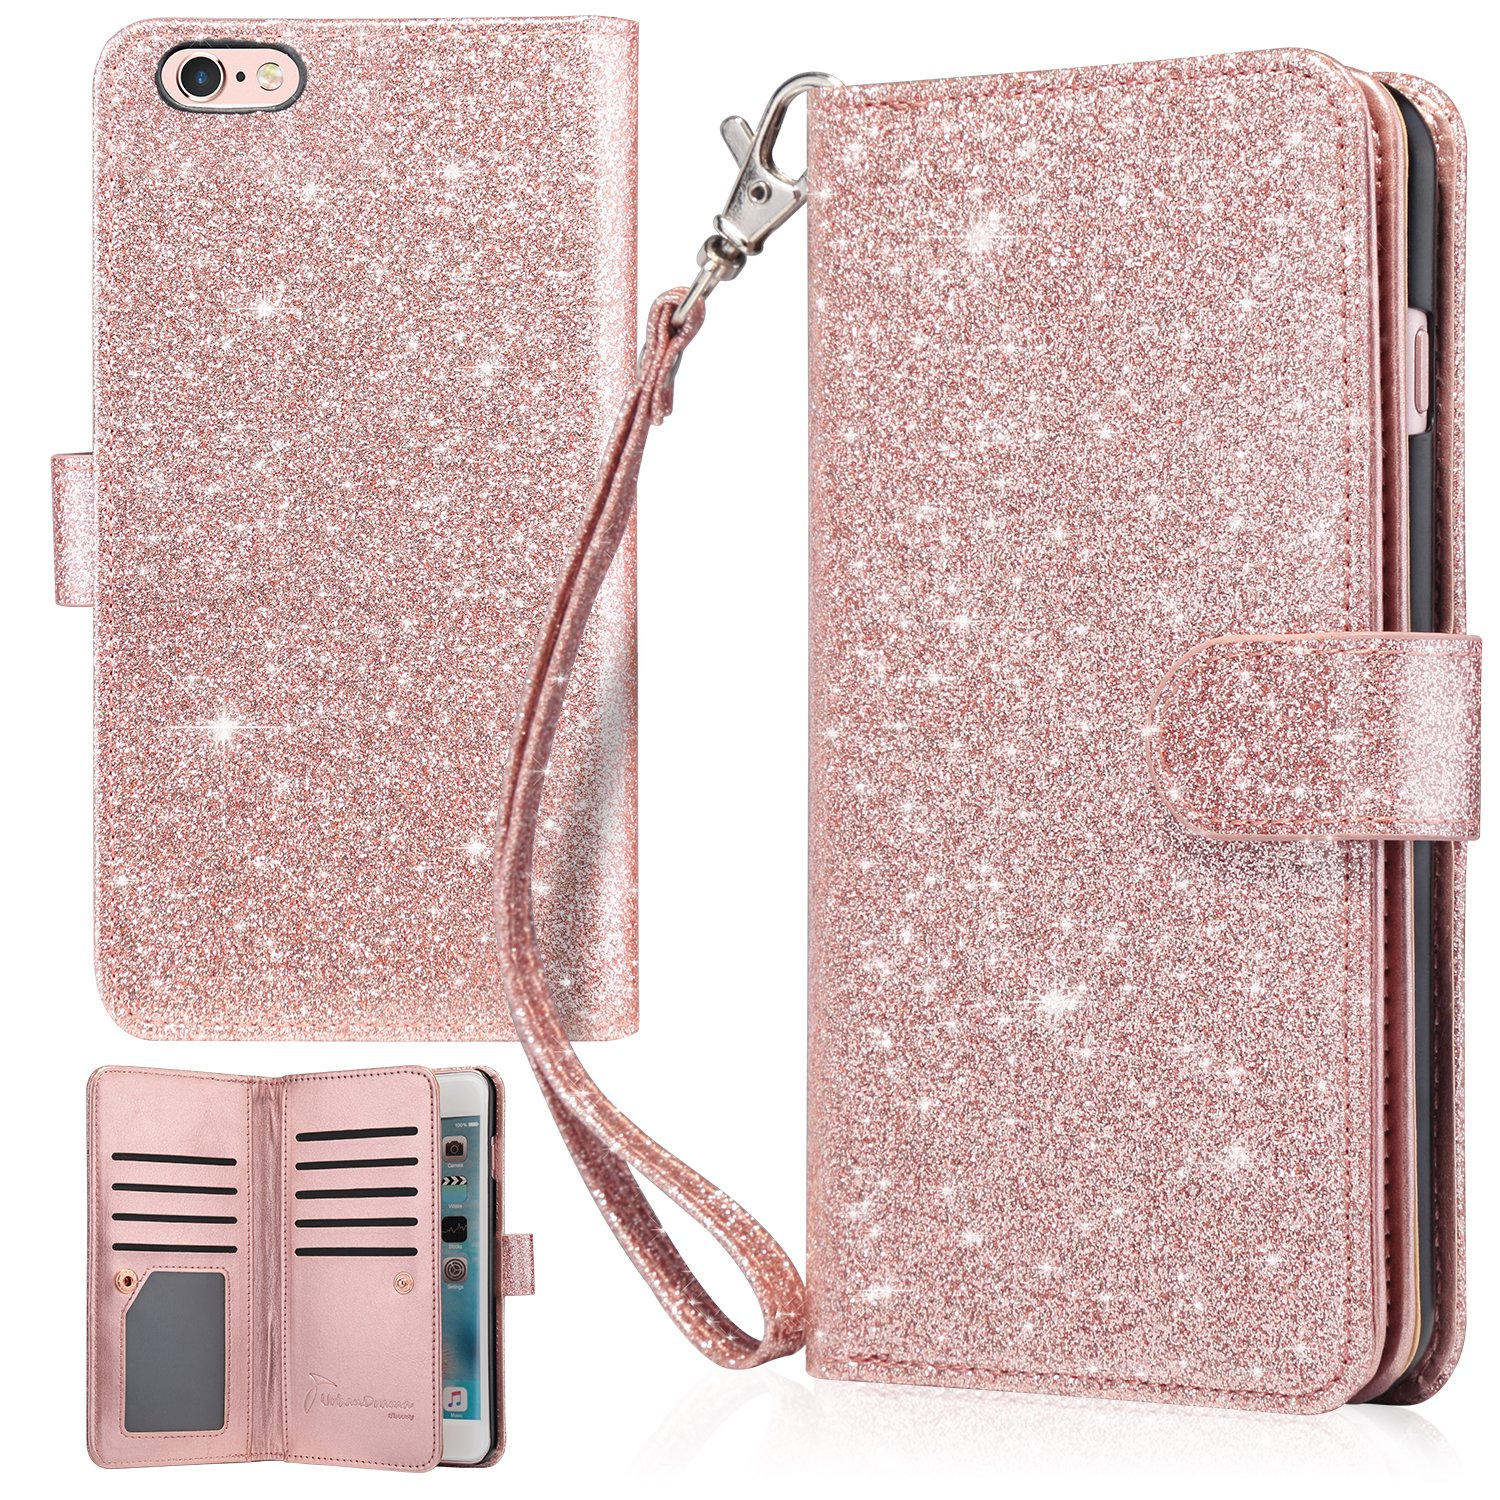 2a294192a4c2 Amazon.com  UrbanDrama iPhone 6 Plus Case